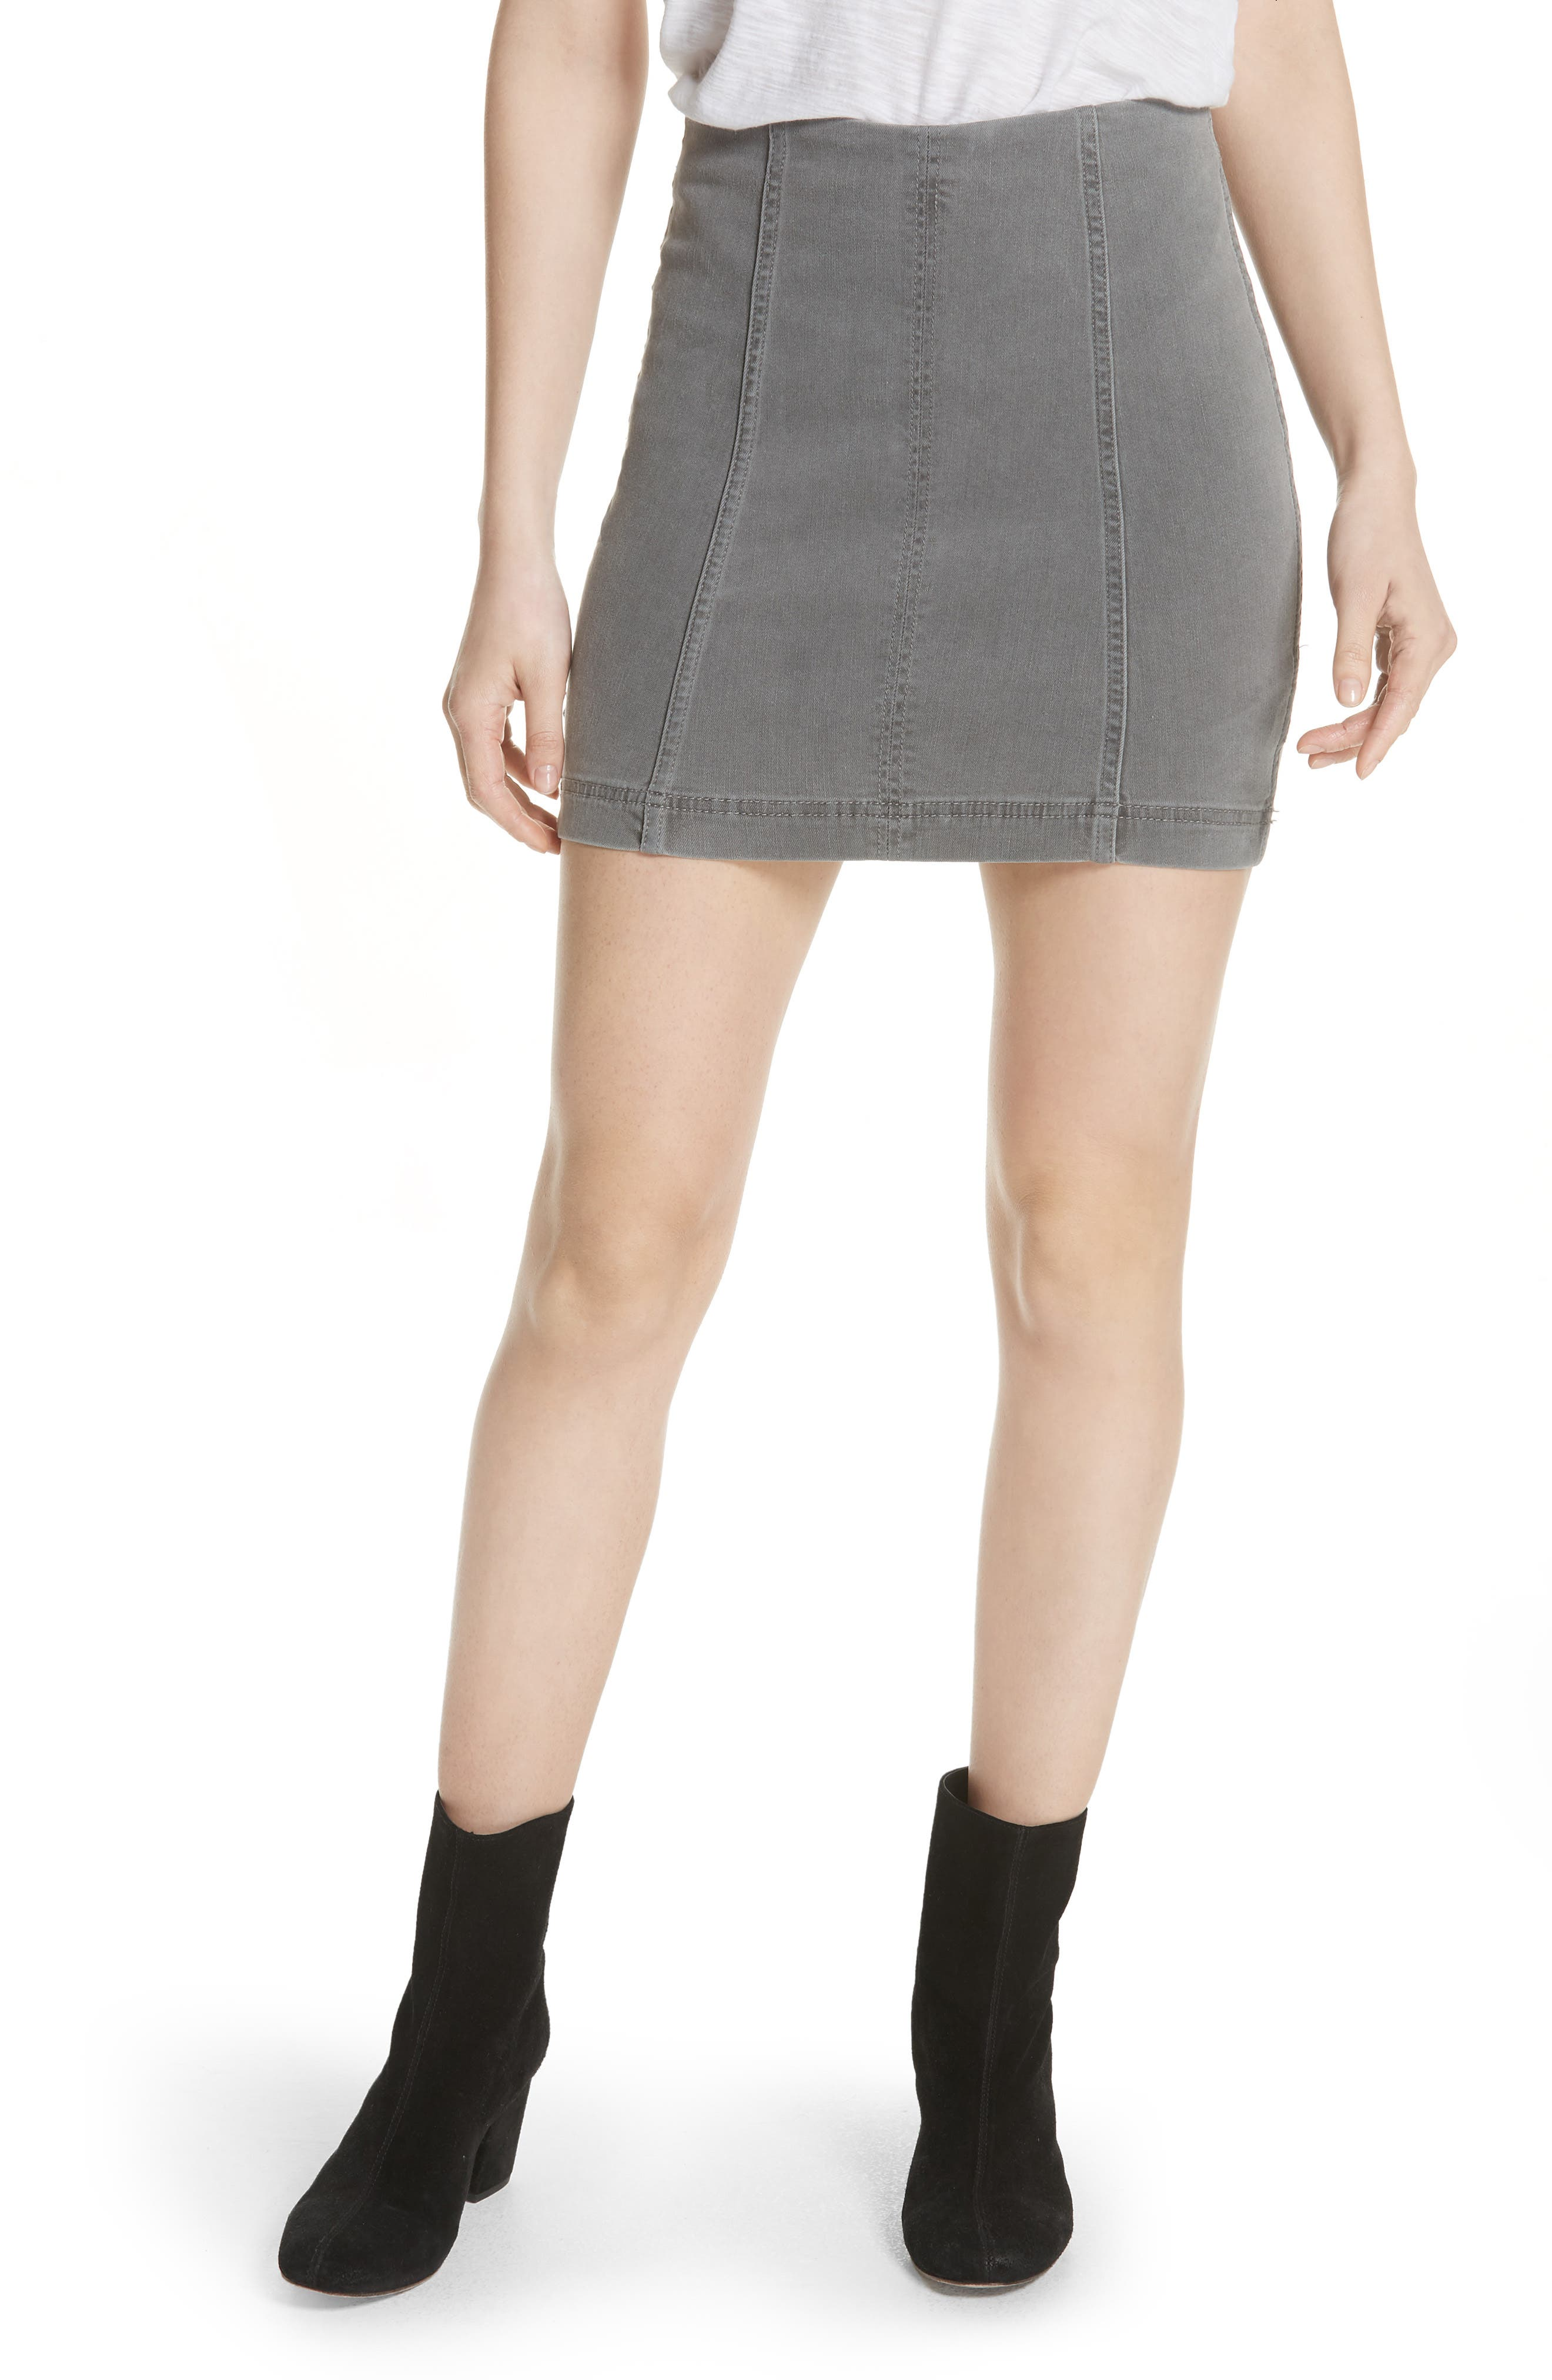 FREE PEOPLE, We the Free by Free People Modern Femme Denim Miniskirt, Main thumbnail 1, color, LIGHT GREY